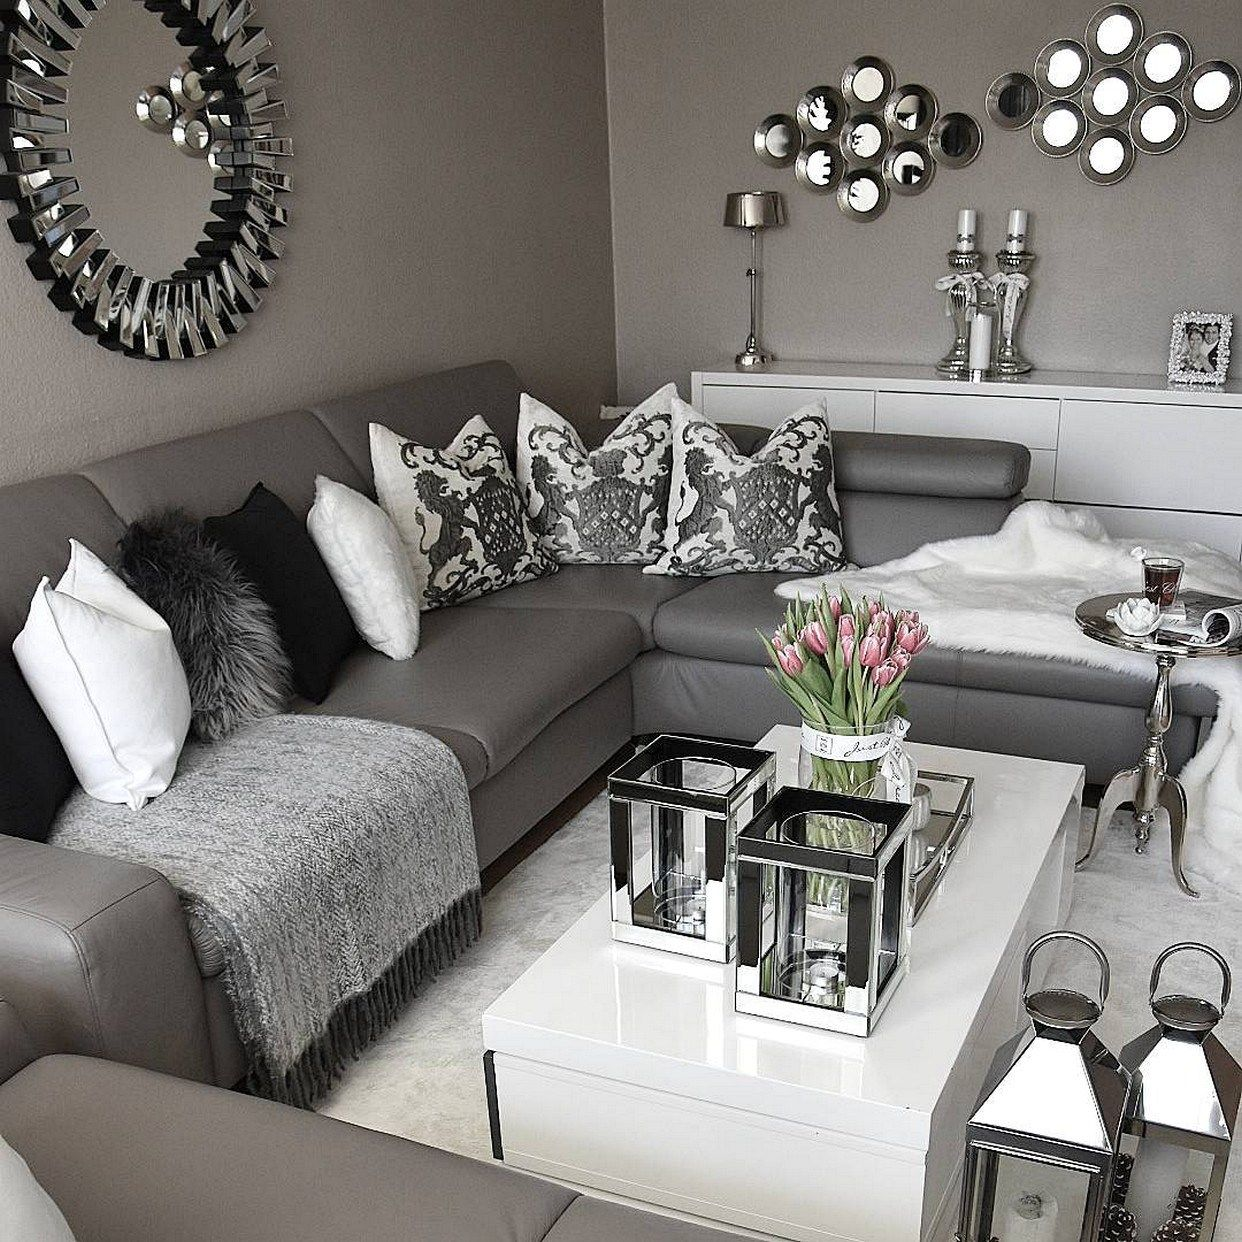 111 Fabulous Dark Grey Living Room Ideas To Inspire You 110 Gray Living Room Design Silver Living Room Living Room Grey